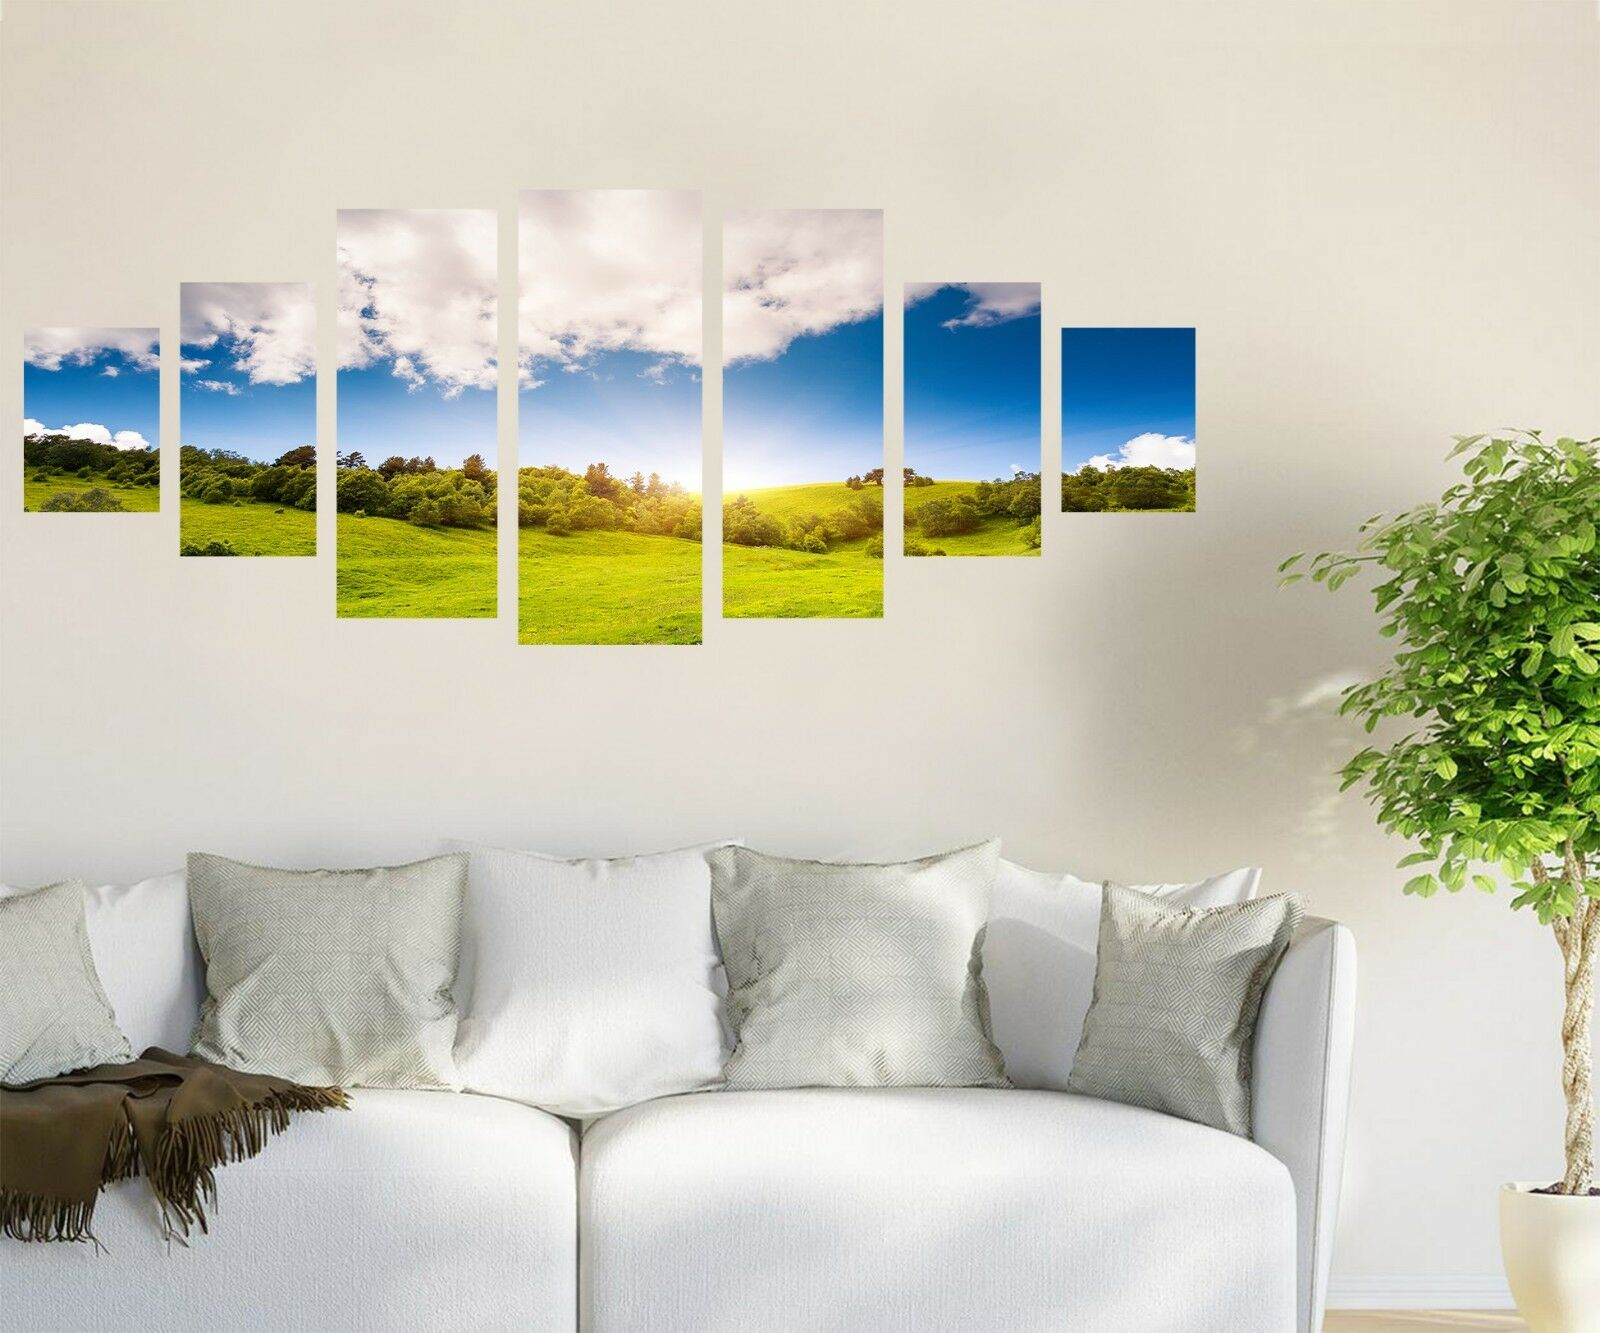 3D Meadow Sky 72 Unframed Print Wall Paper Decal Wall Deco Indoor AJ Jenny